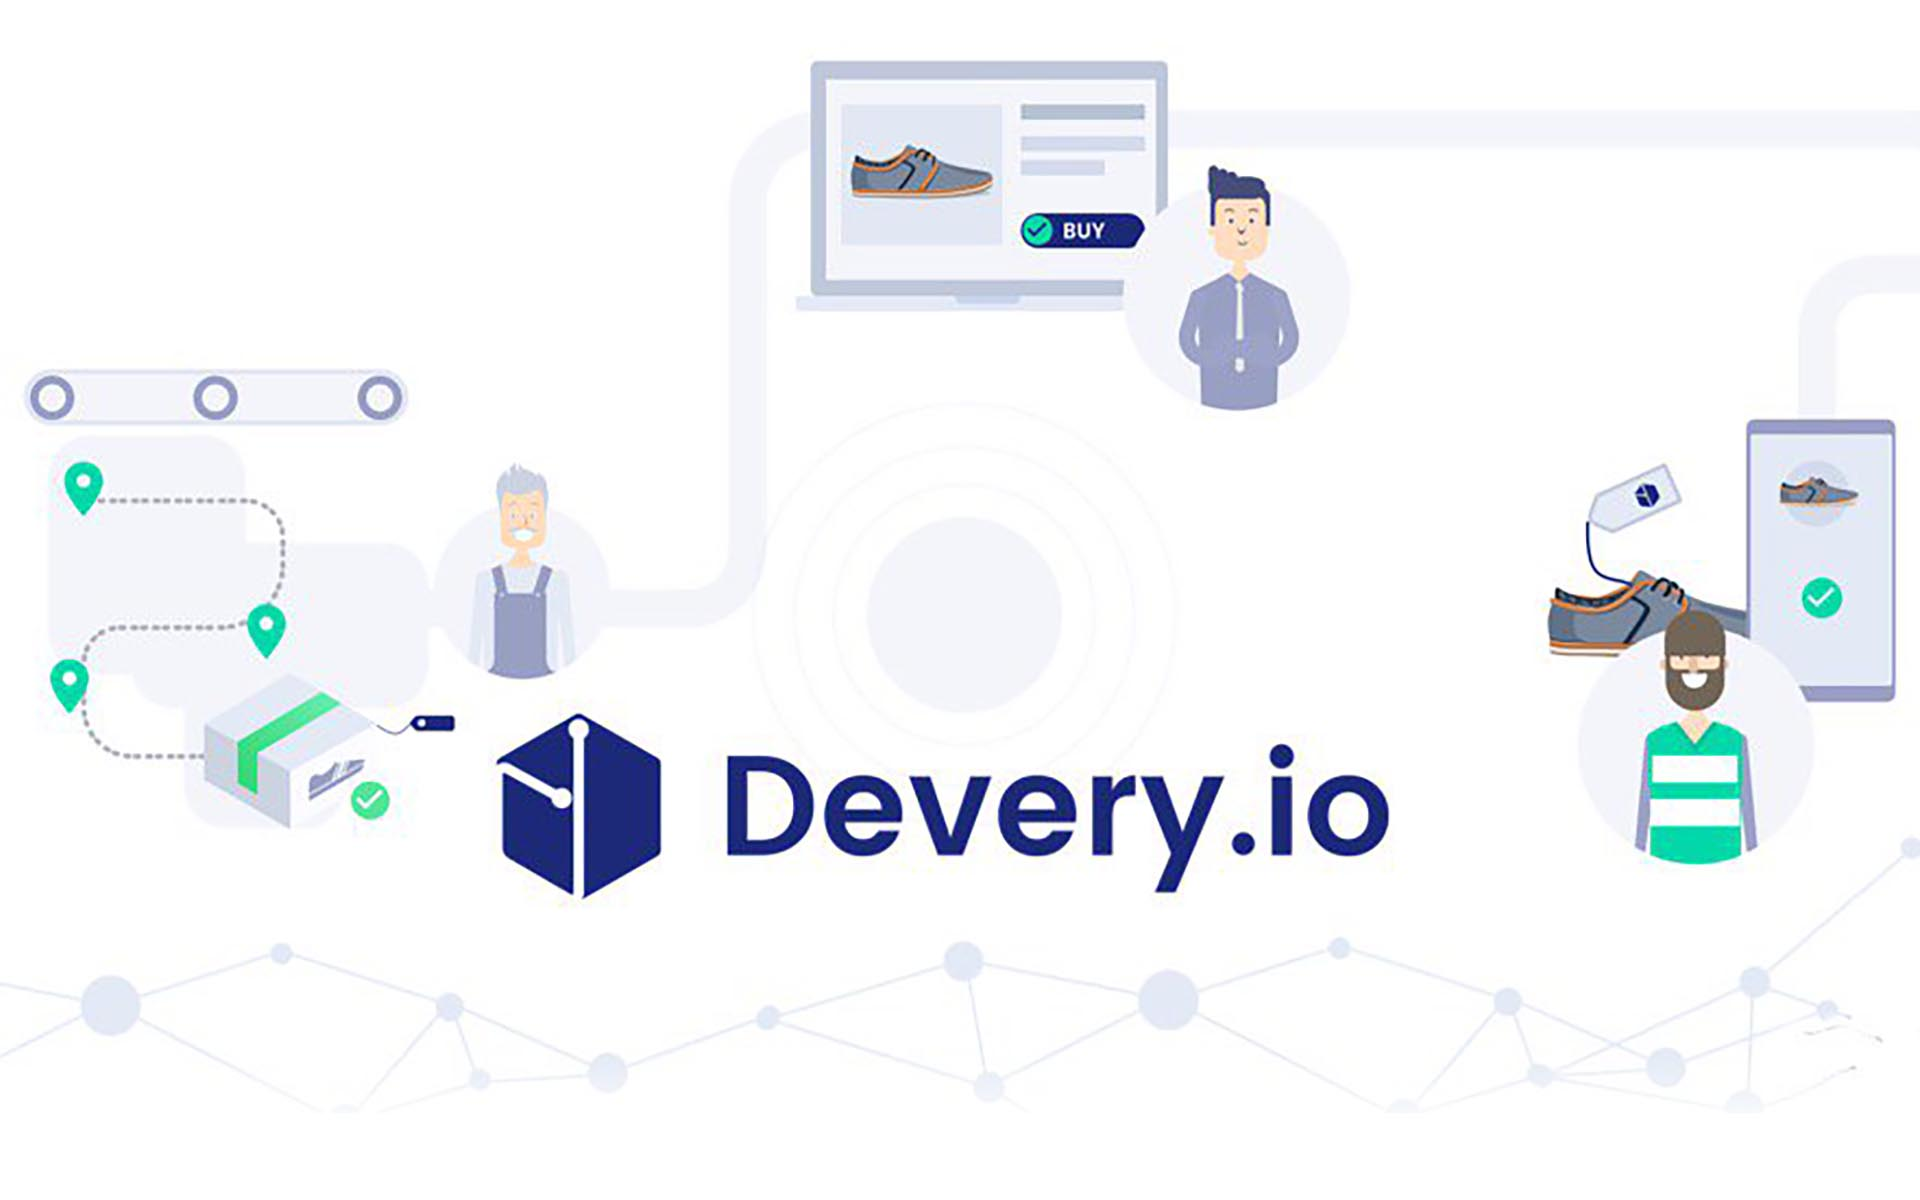 Devery.io - a Blockchain Powered, Open-Source, Product Verification Protocol